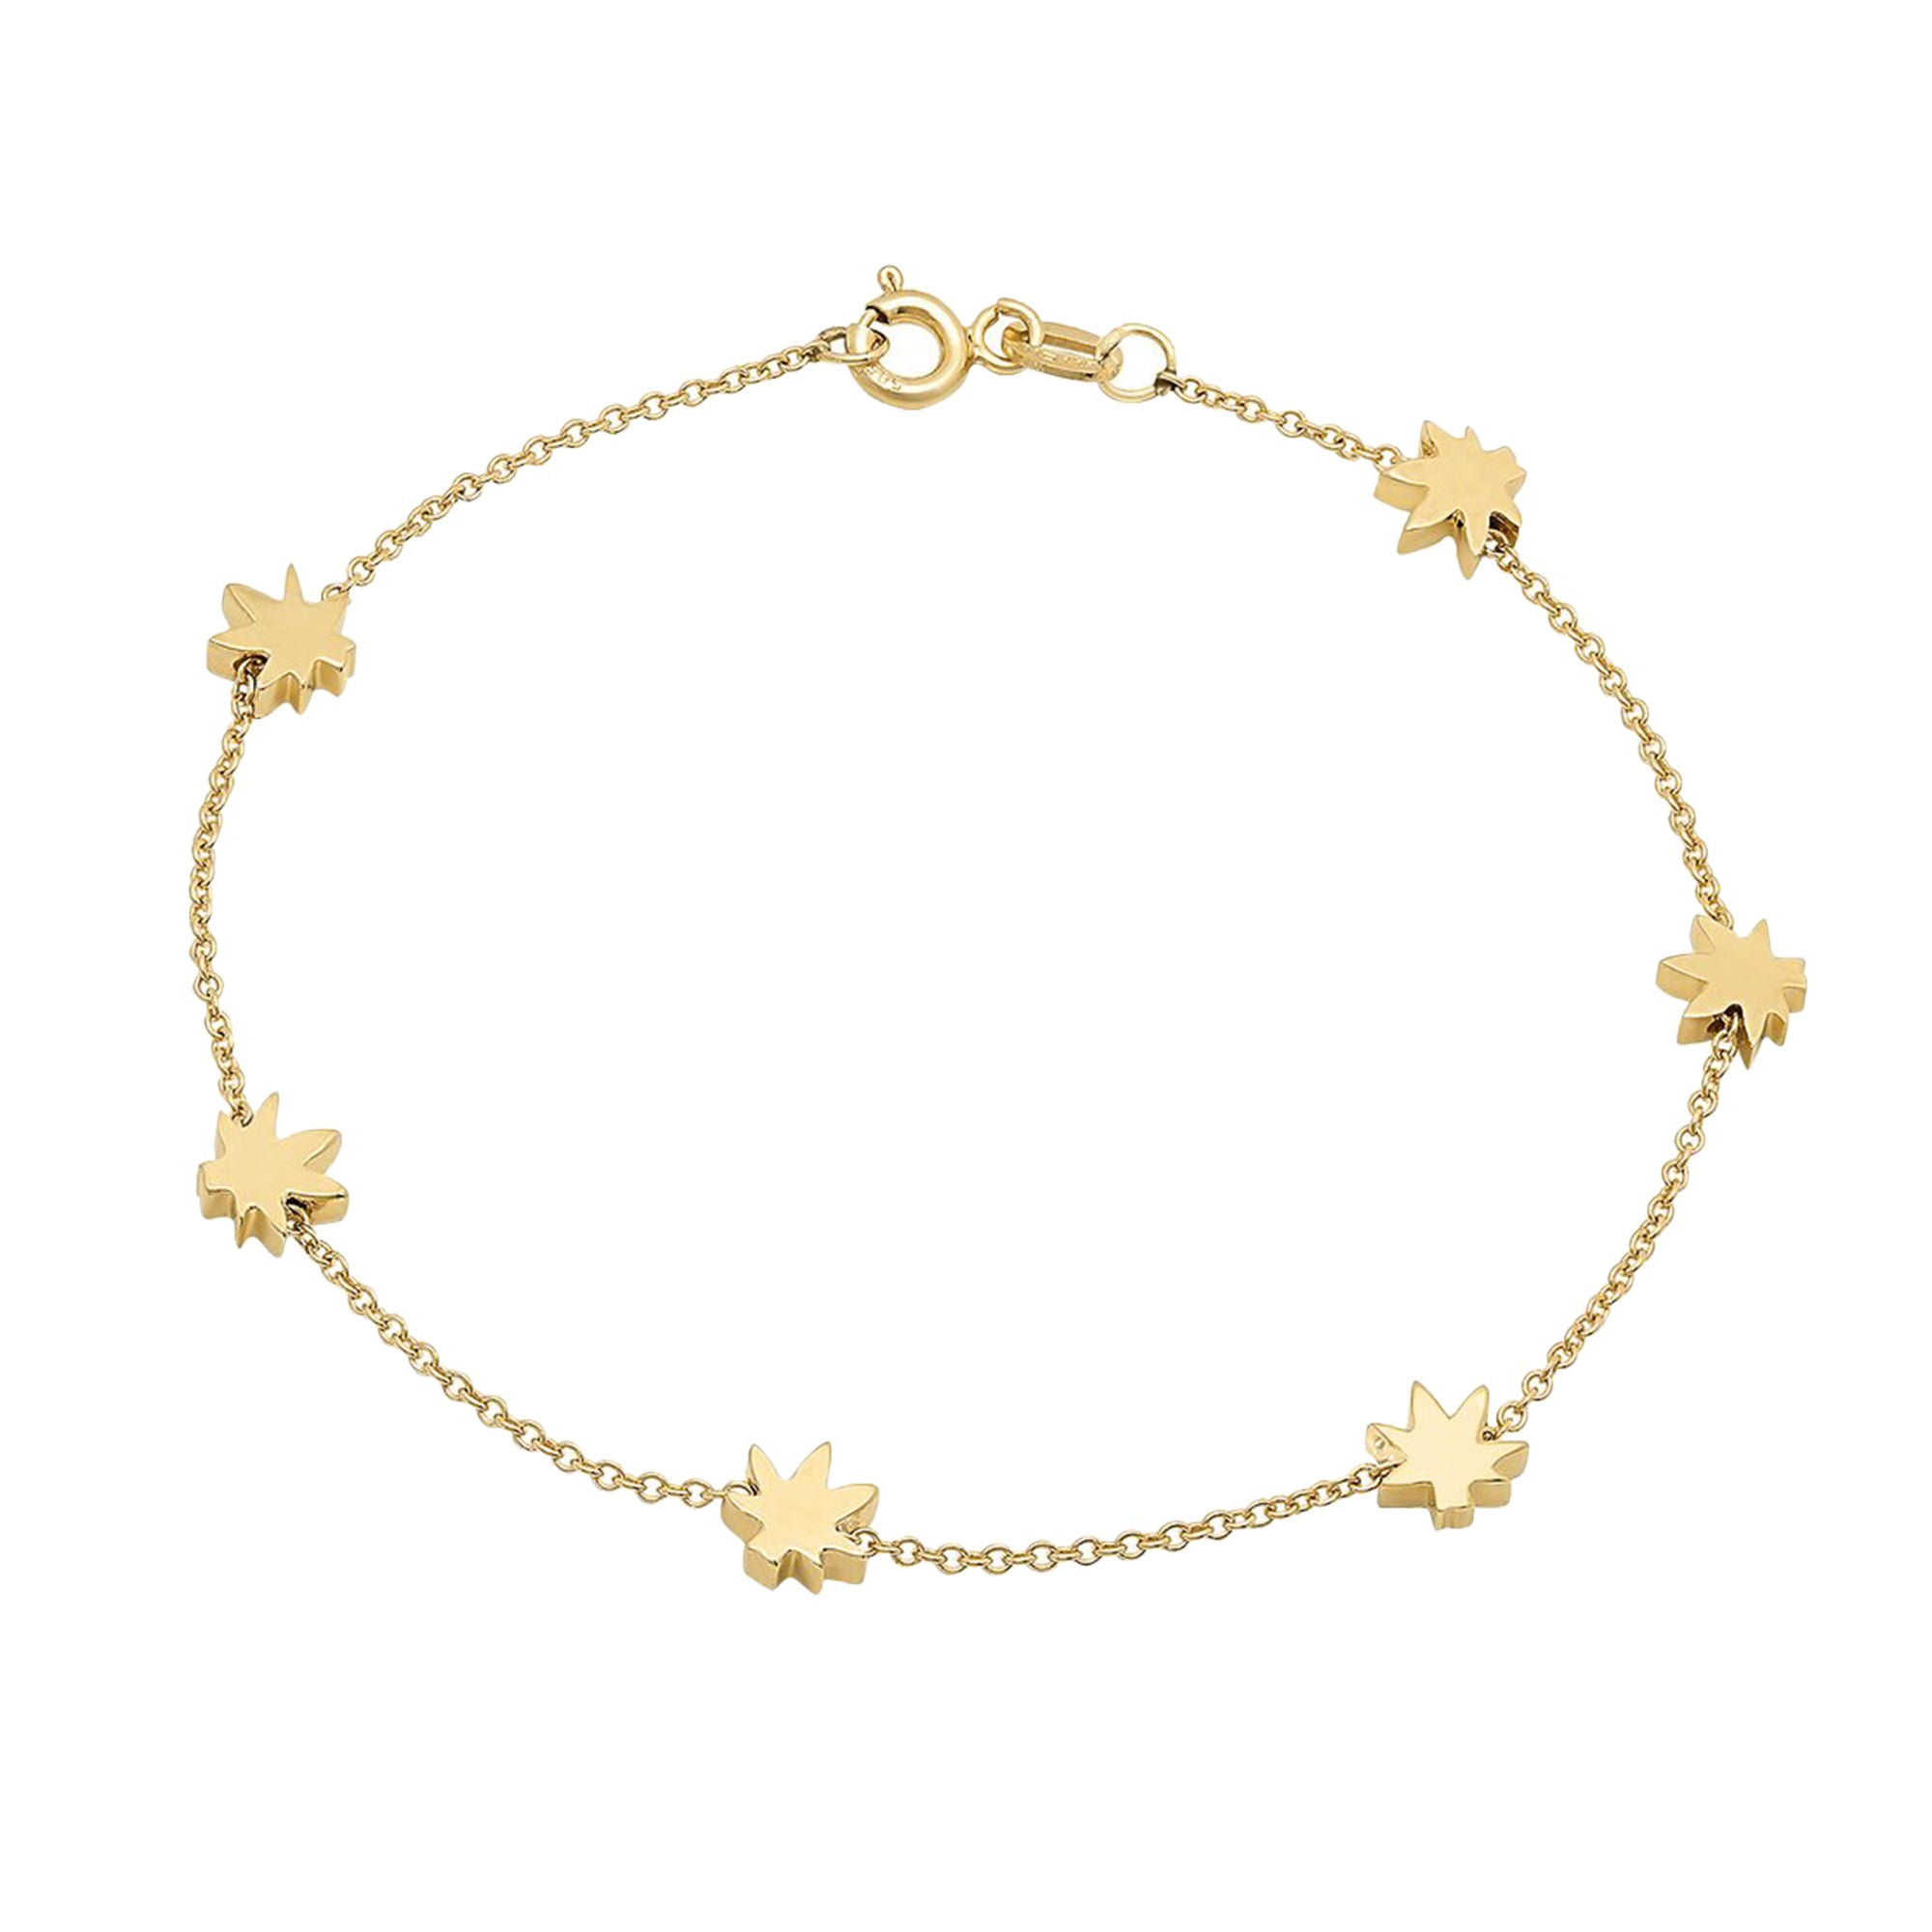 Gold Cannabis Bracelet by Established for Broken English Jewelry